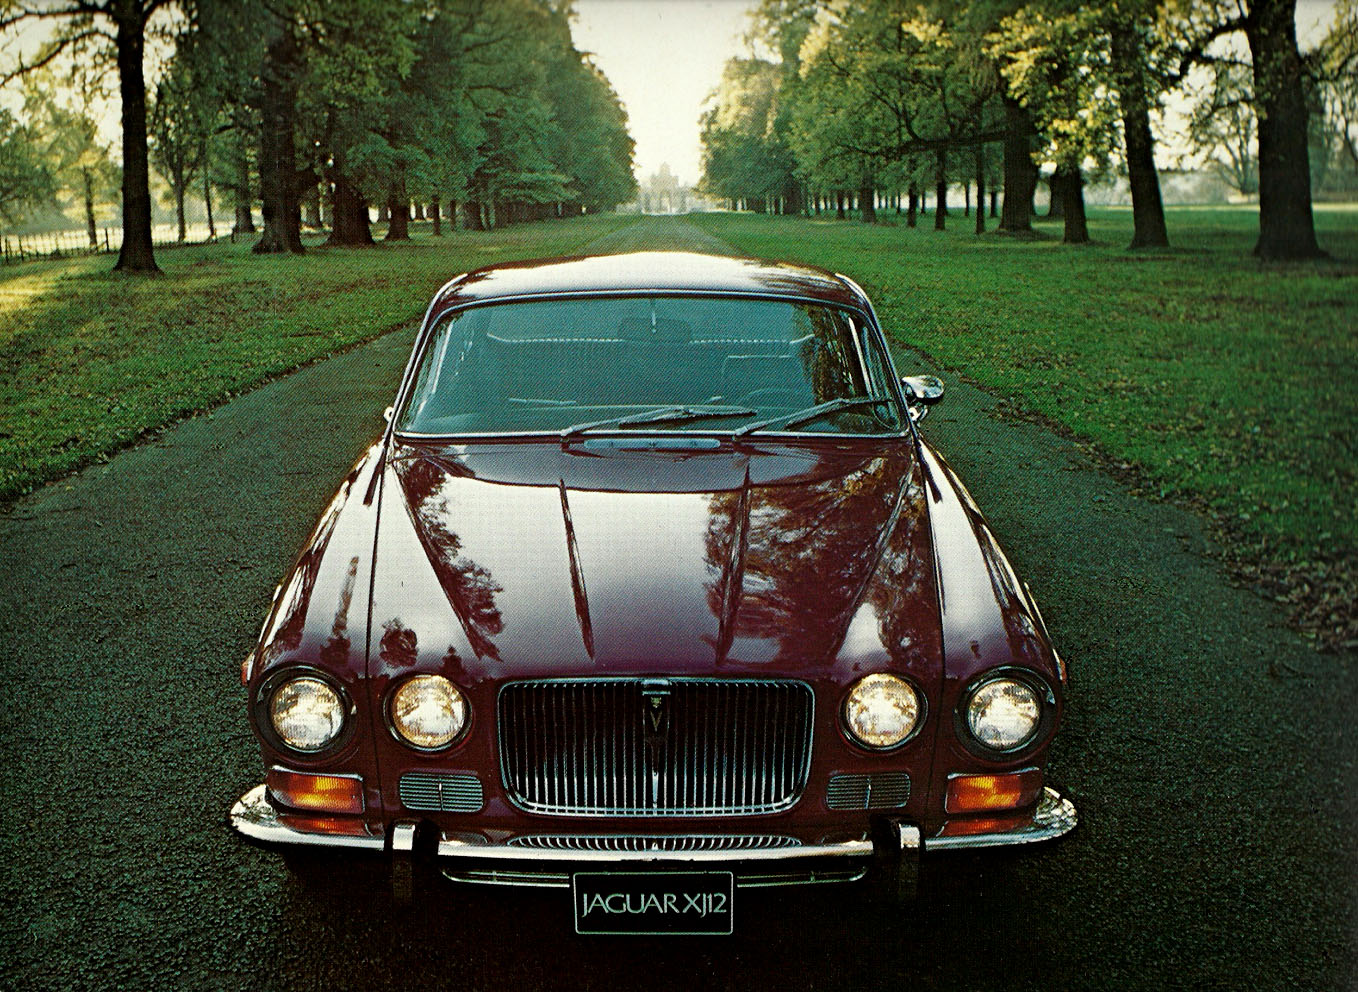 tunnelram.net_Jaguar xj series (12).jpg